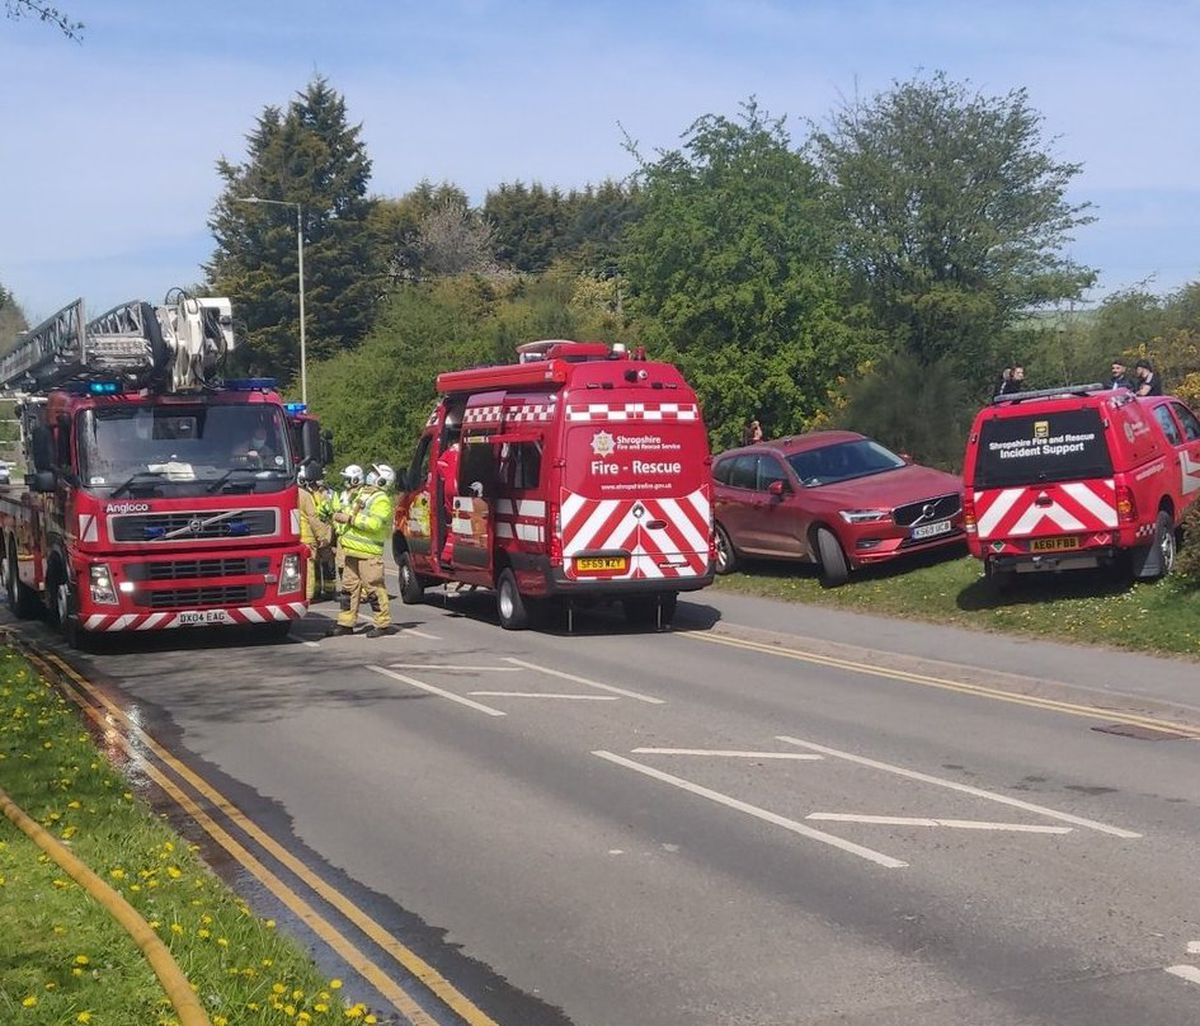 Emergency services called to the scene